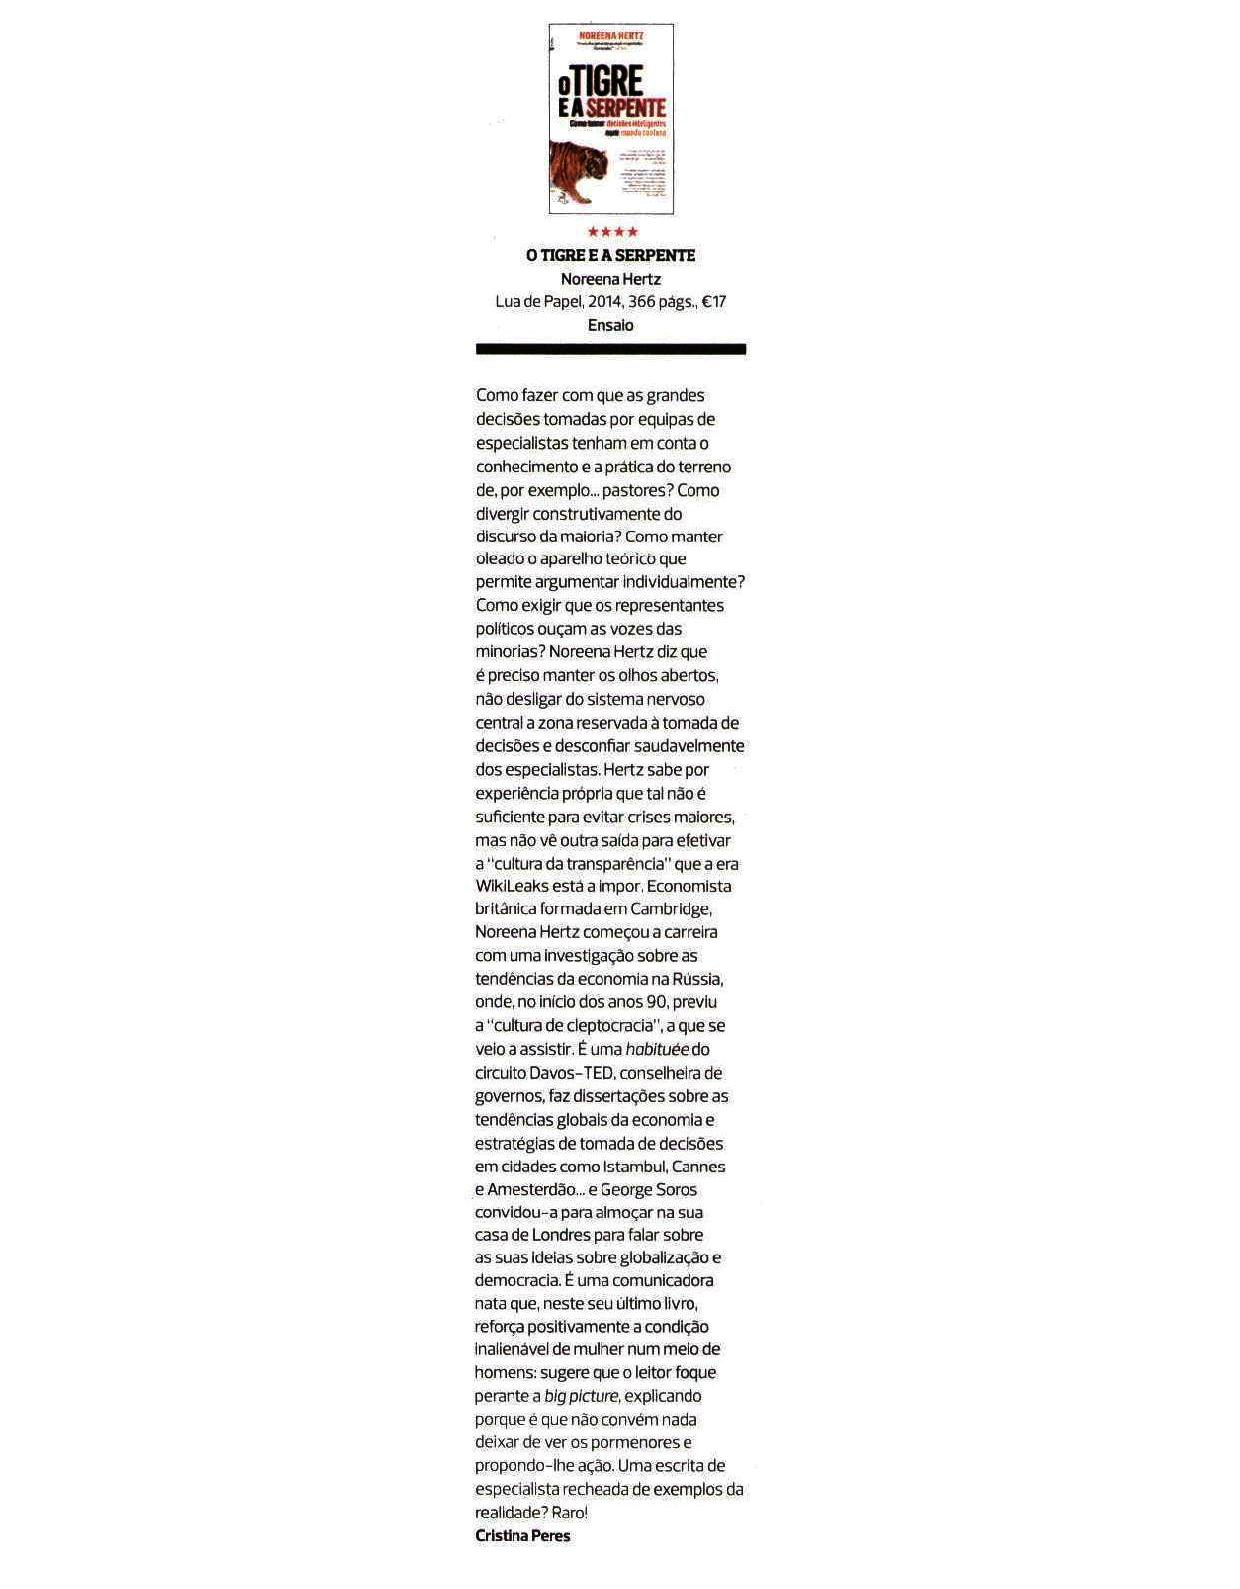 O Tigre e a Serpente_Expresso_Review_18042014-1-page-001-1